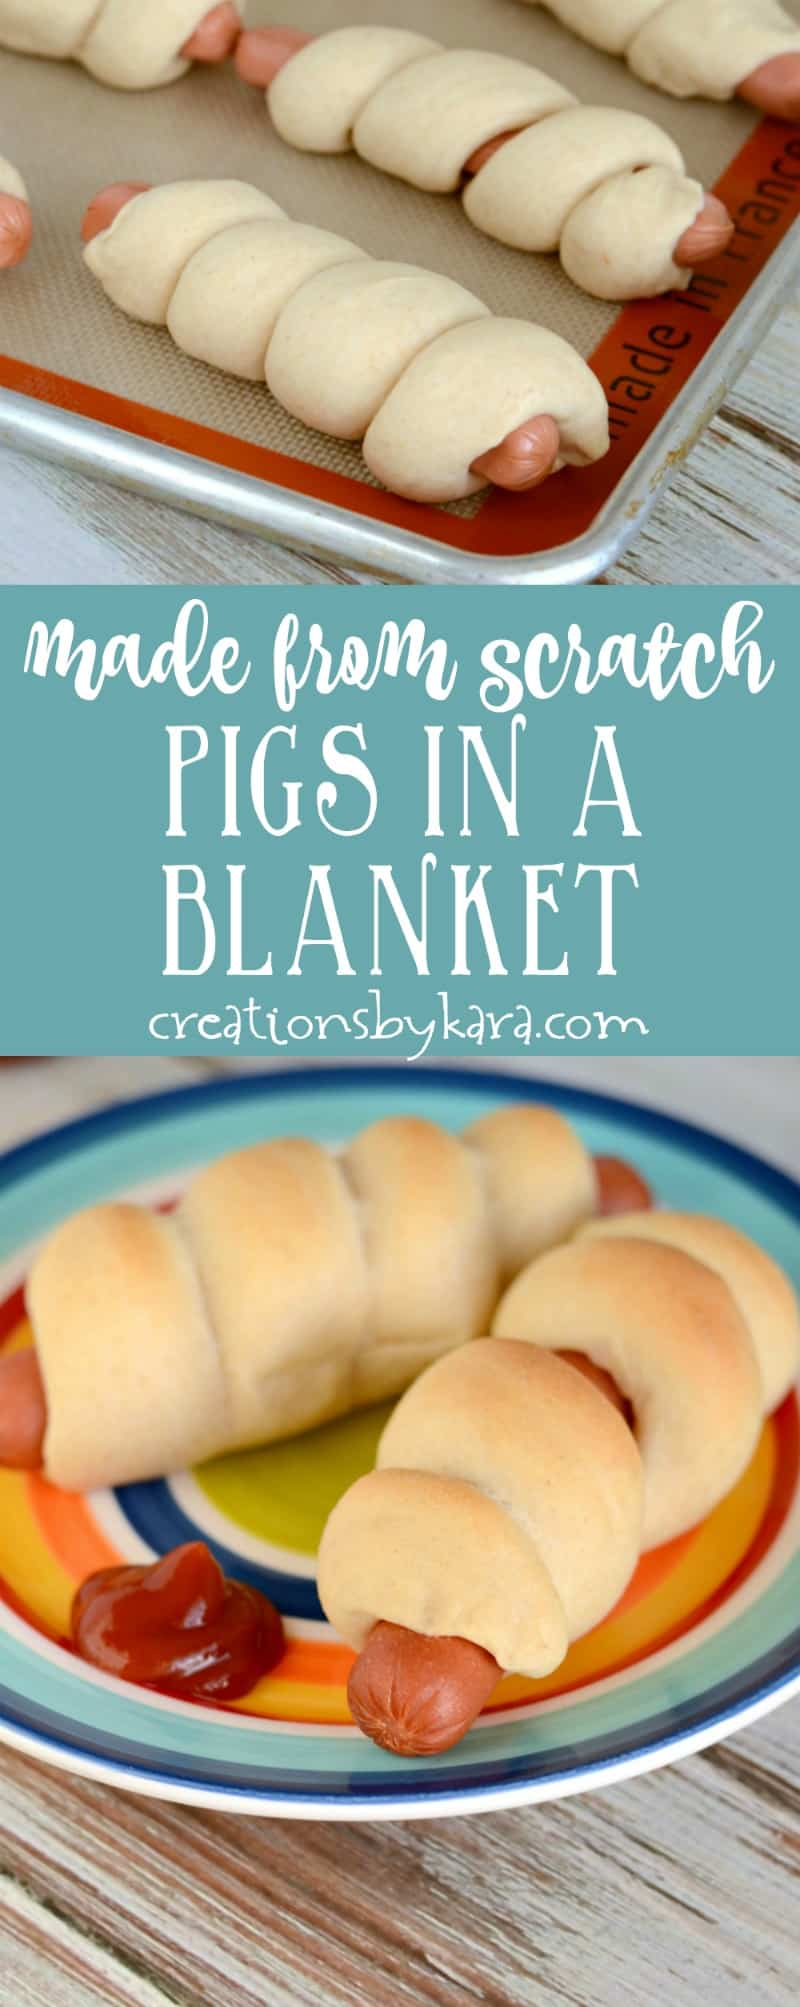 Made from scratch dough makes these the best pigs in a blanket ever! A kid pleasing dinner recipe the whole family will love.